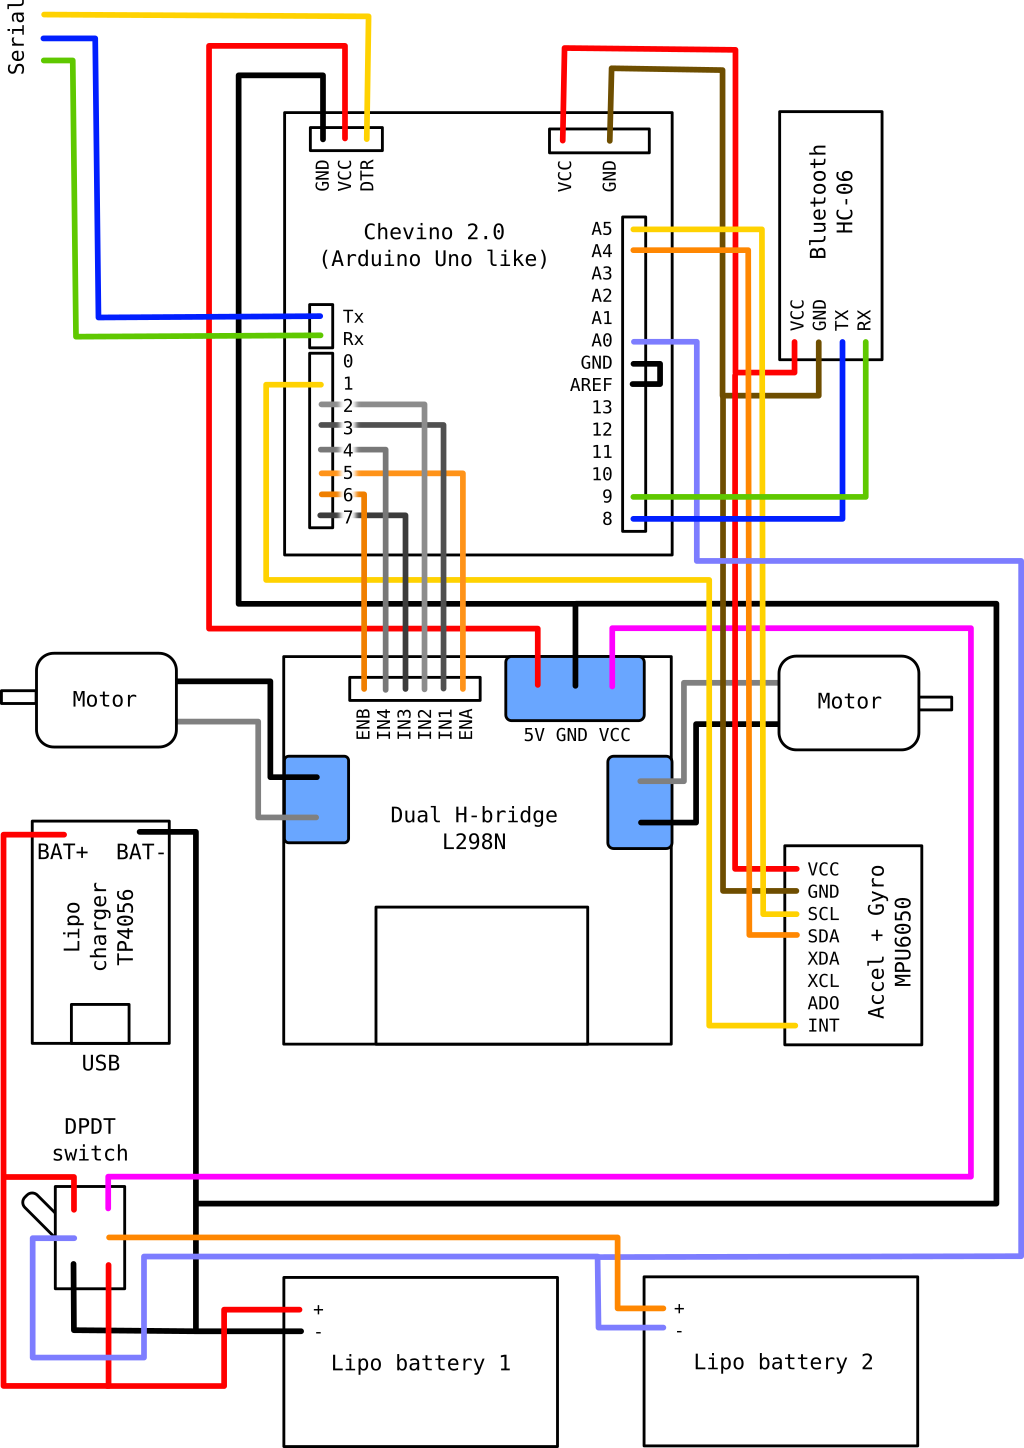 Schematic of the connections between components